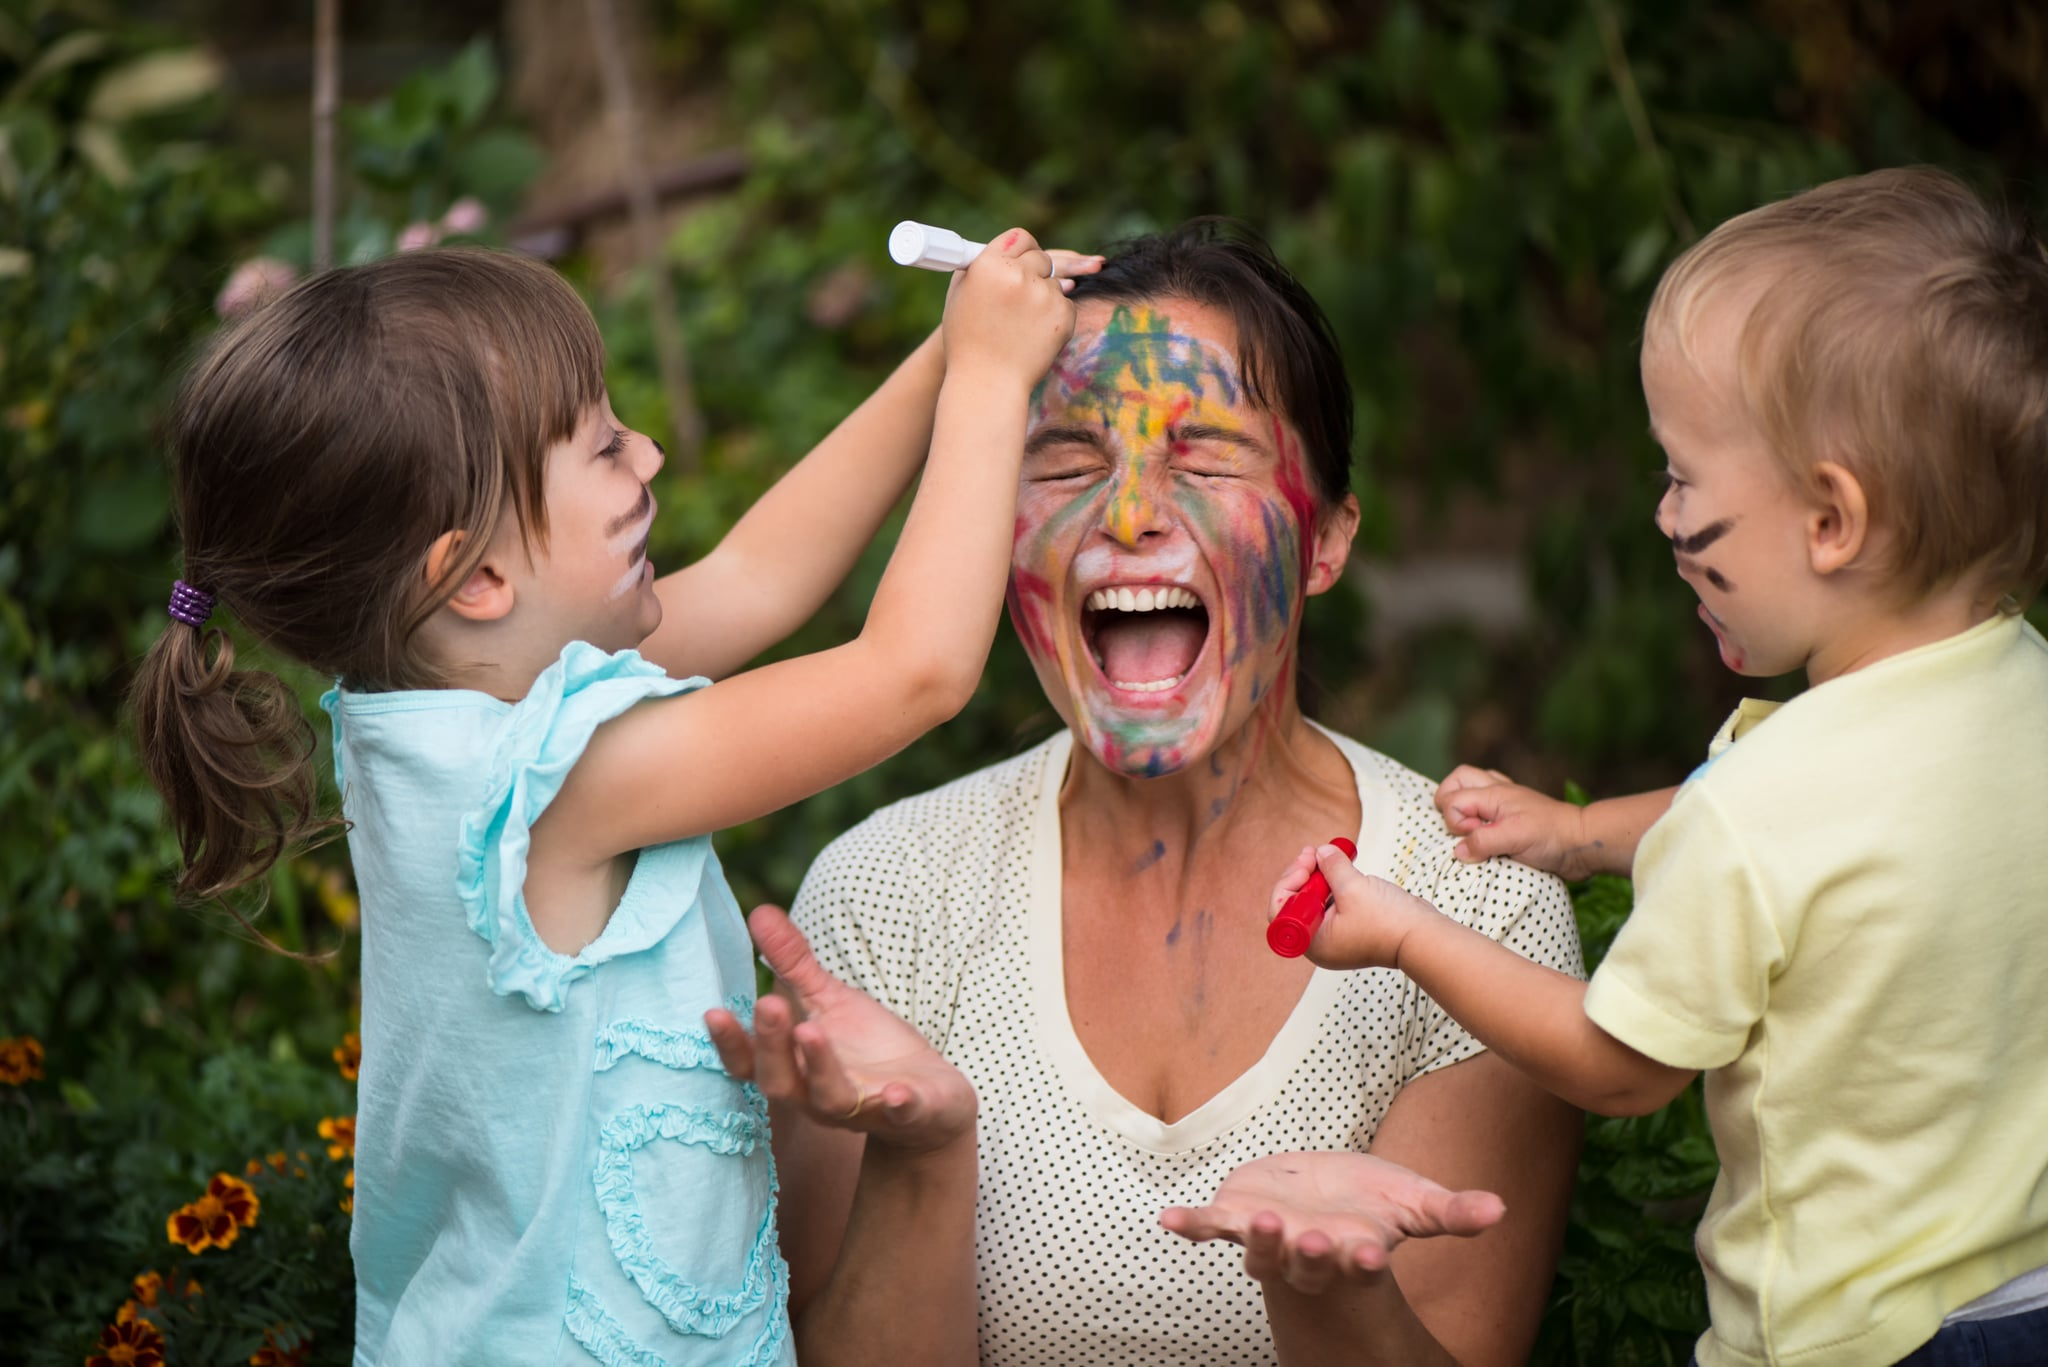 Children are painting mother's face with body colours outside - mother got beyond happiness level from playing with kids